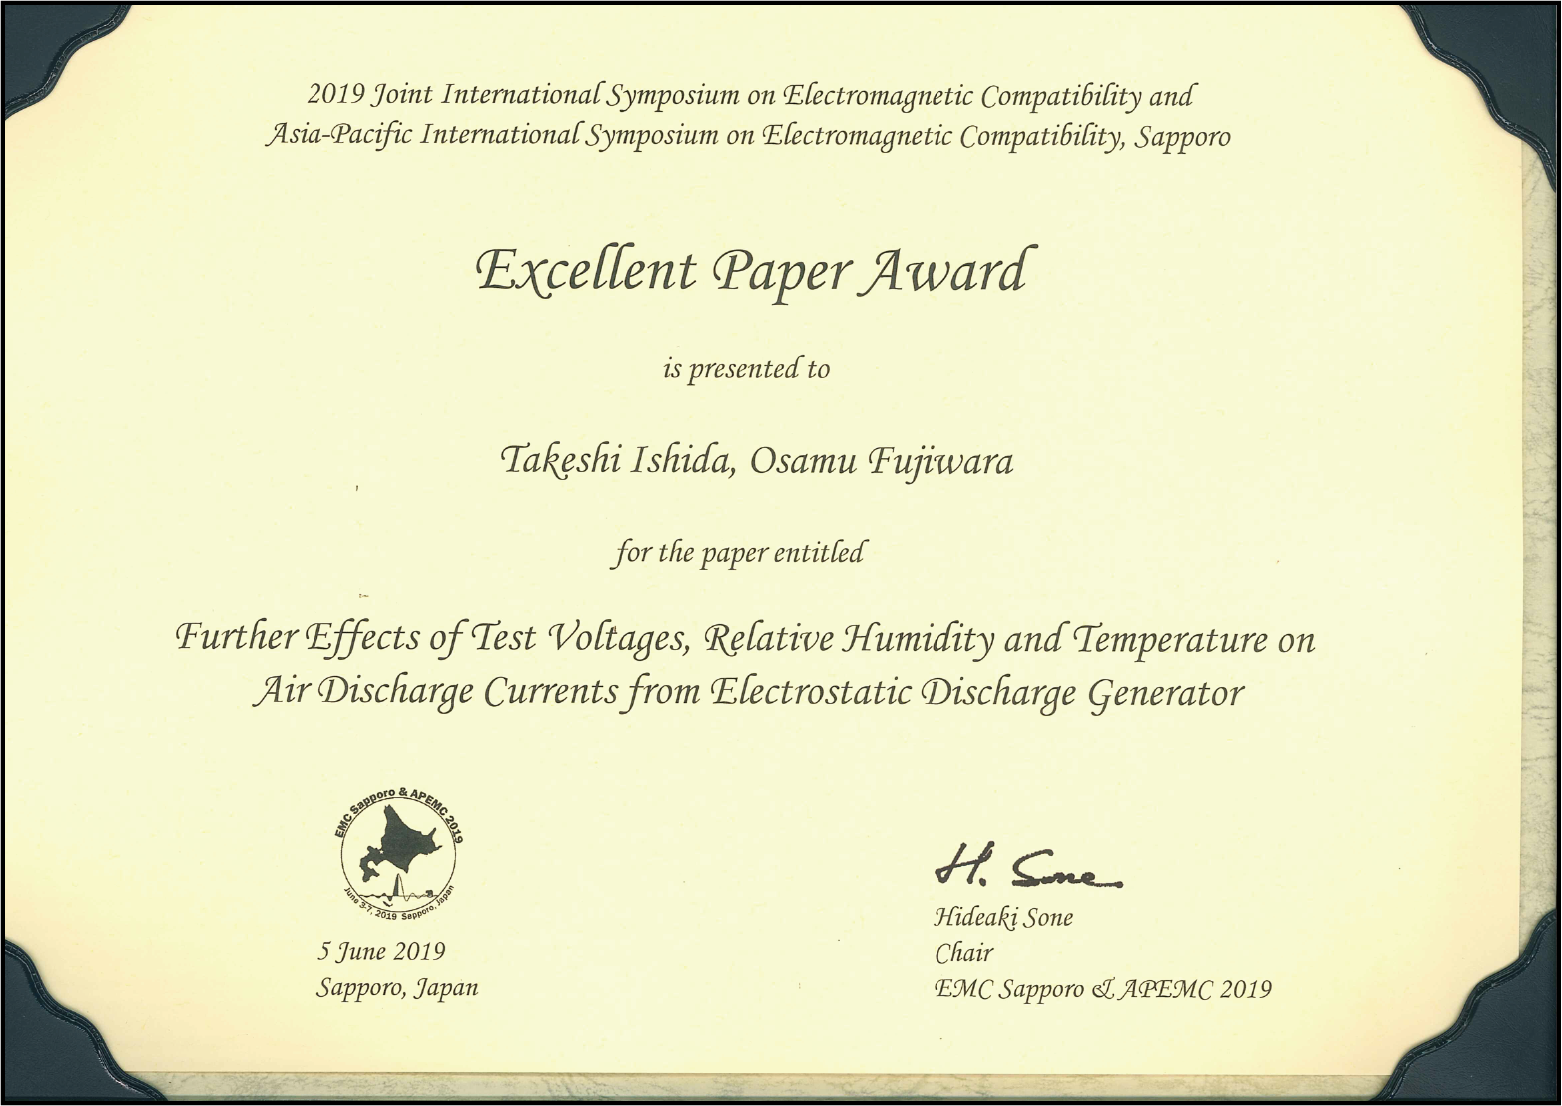 Excellent paper award